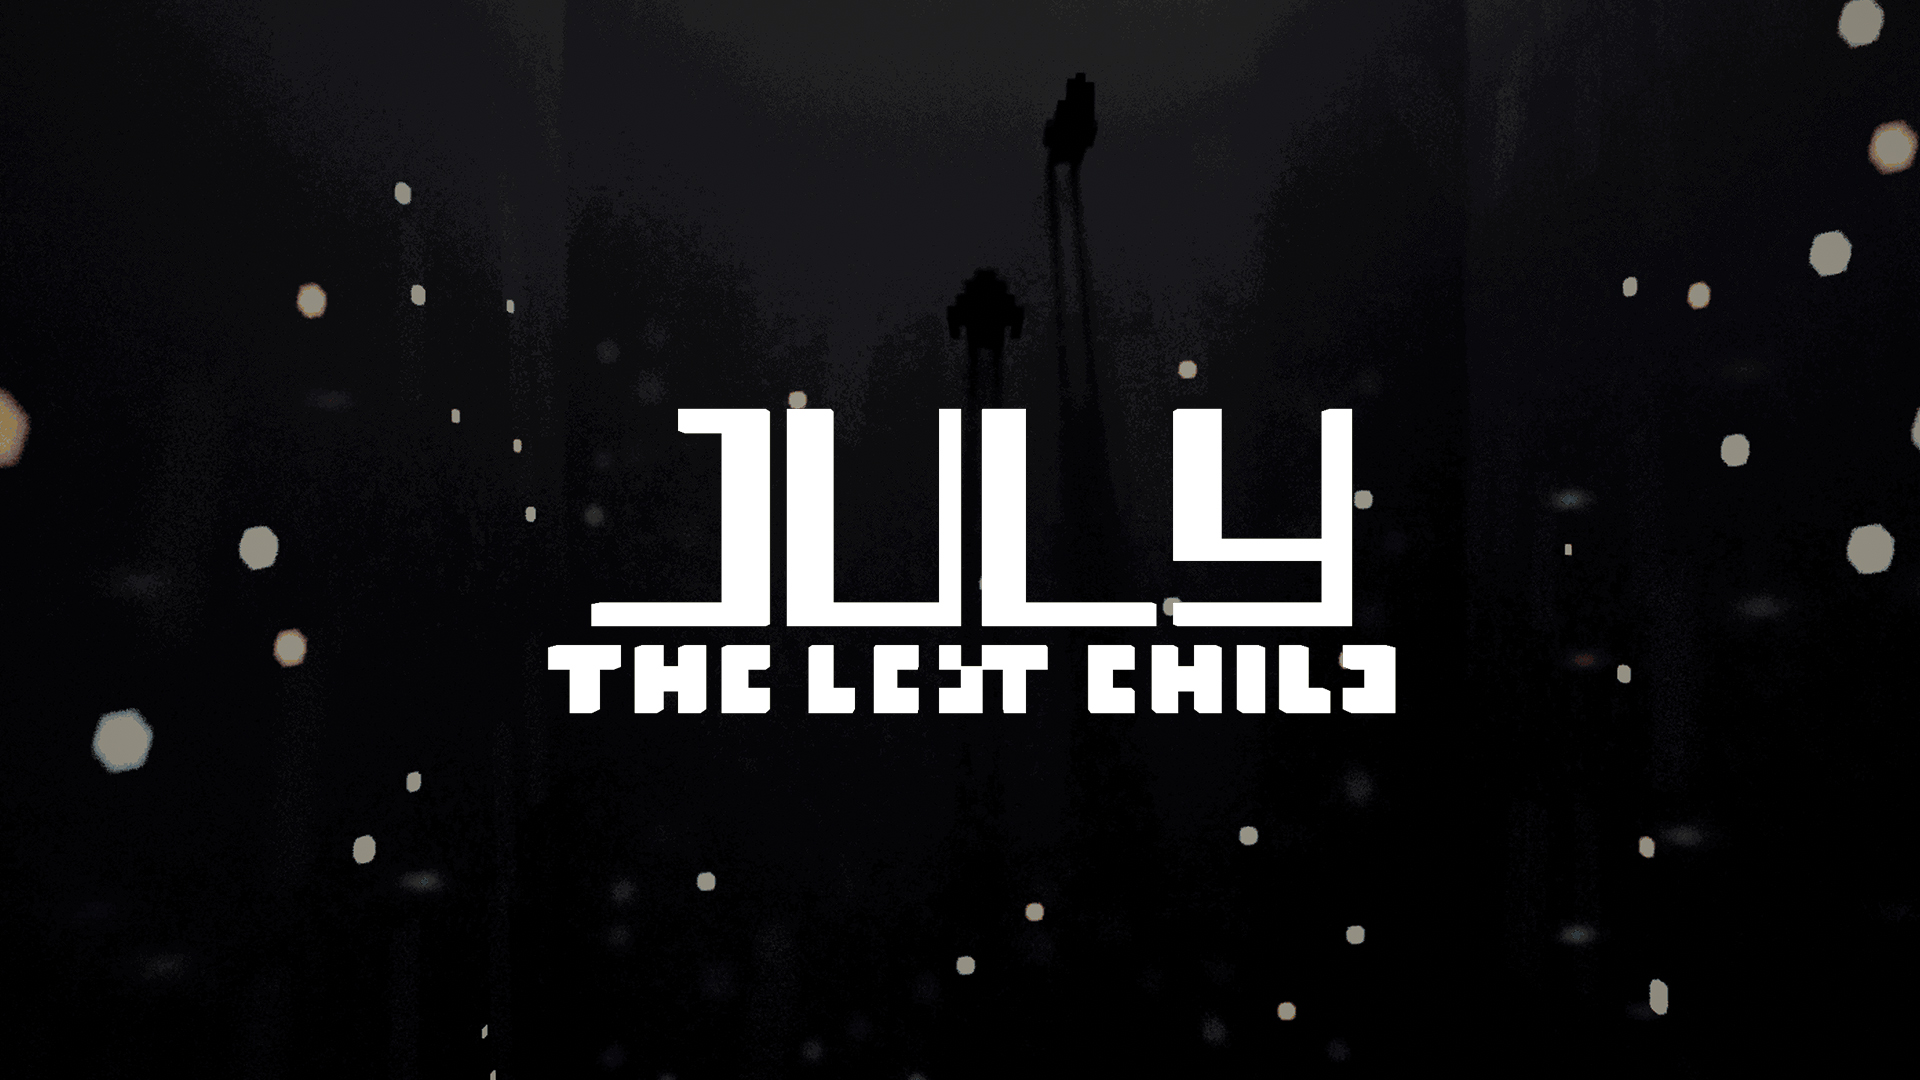 July the Lost Child